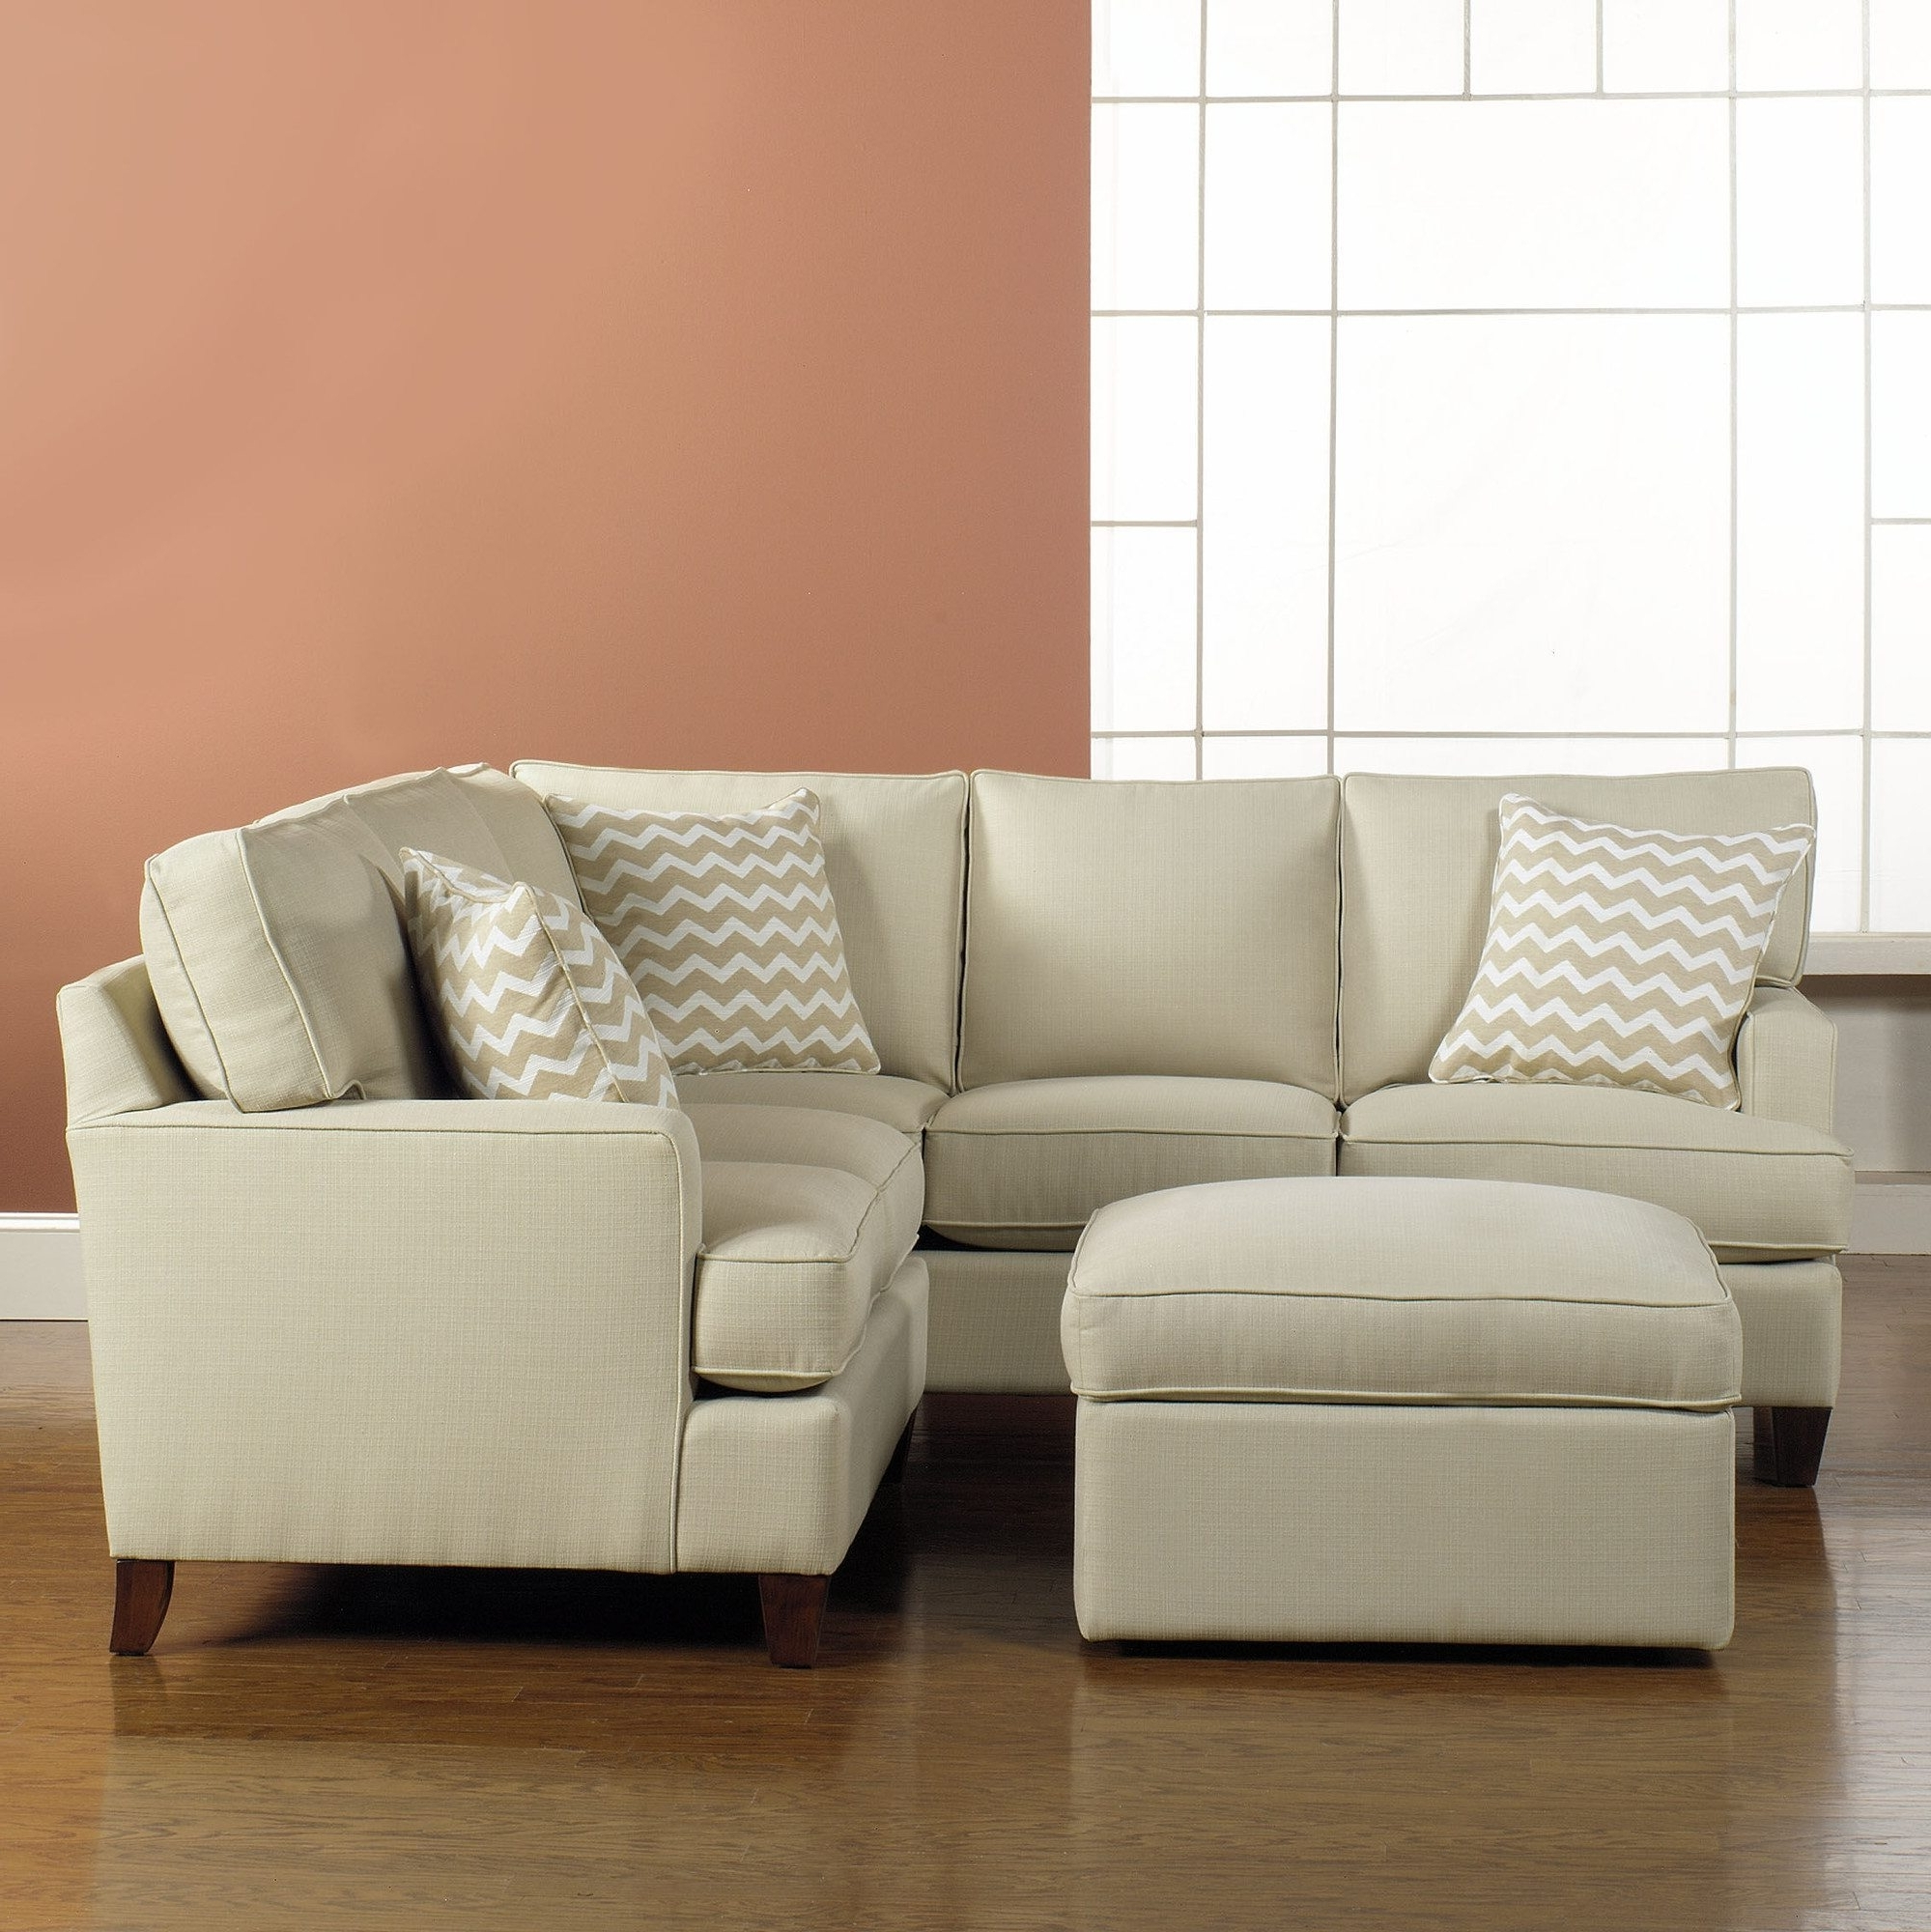 Sofa : Small 2 Piece Sectional Sofa Comfy Sectionals For Small Inside Preferred Narrow Spaces Sectional Sofas (View 14 of 15)